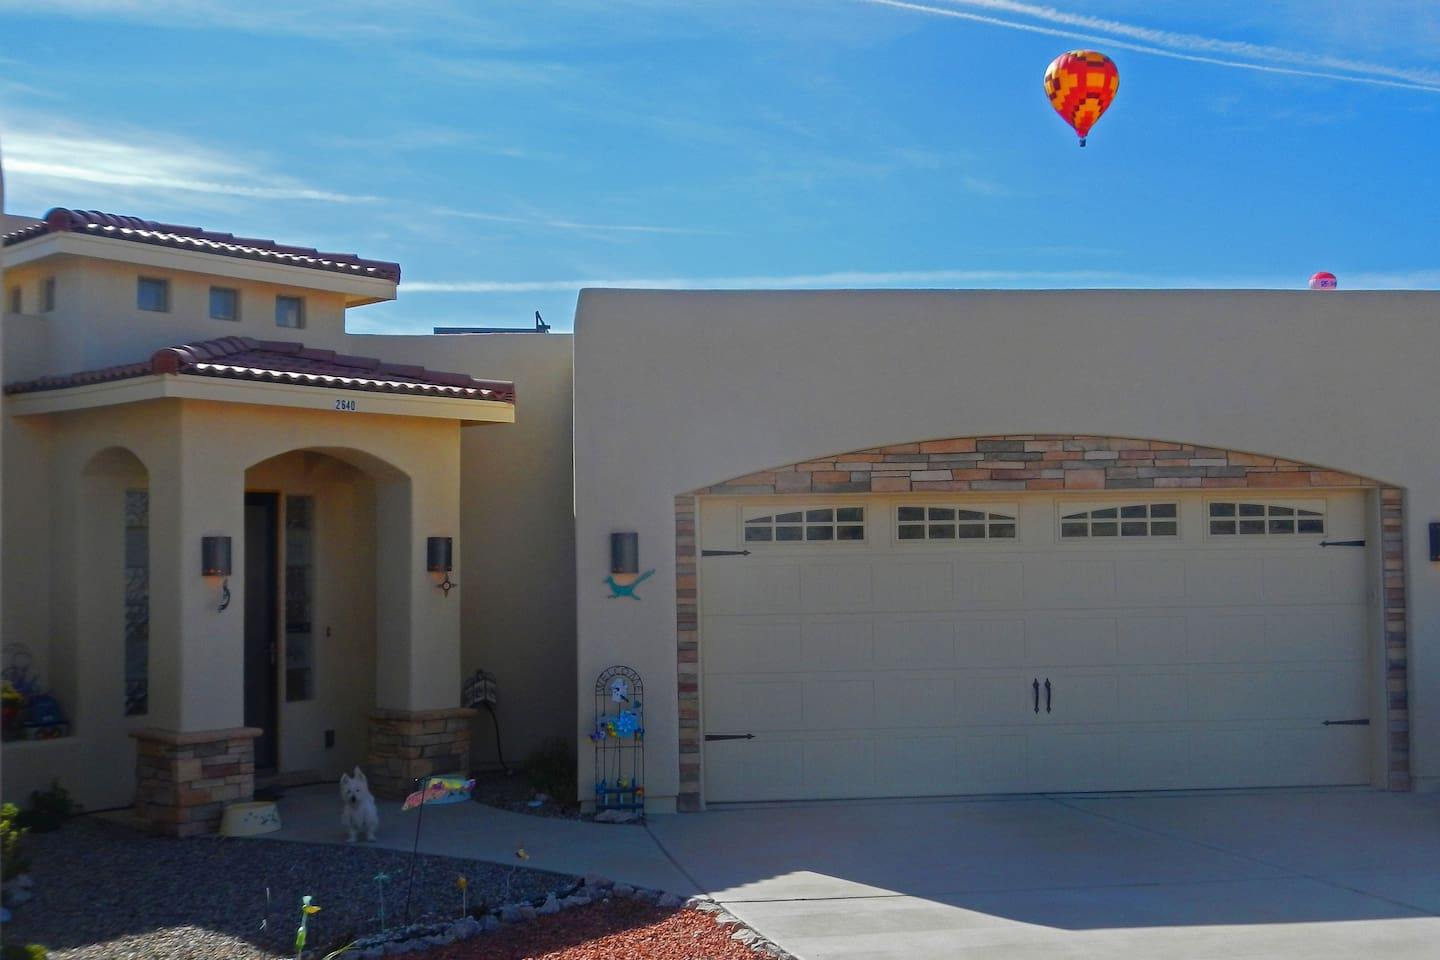 At times when the wind is right, hot air balloons appear over my house